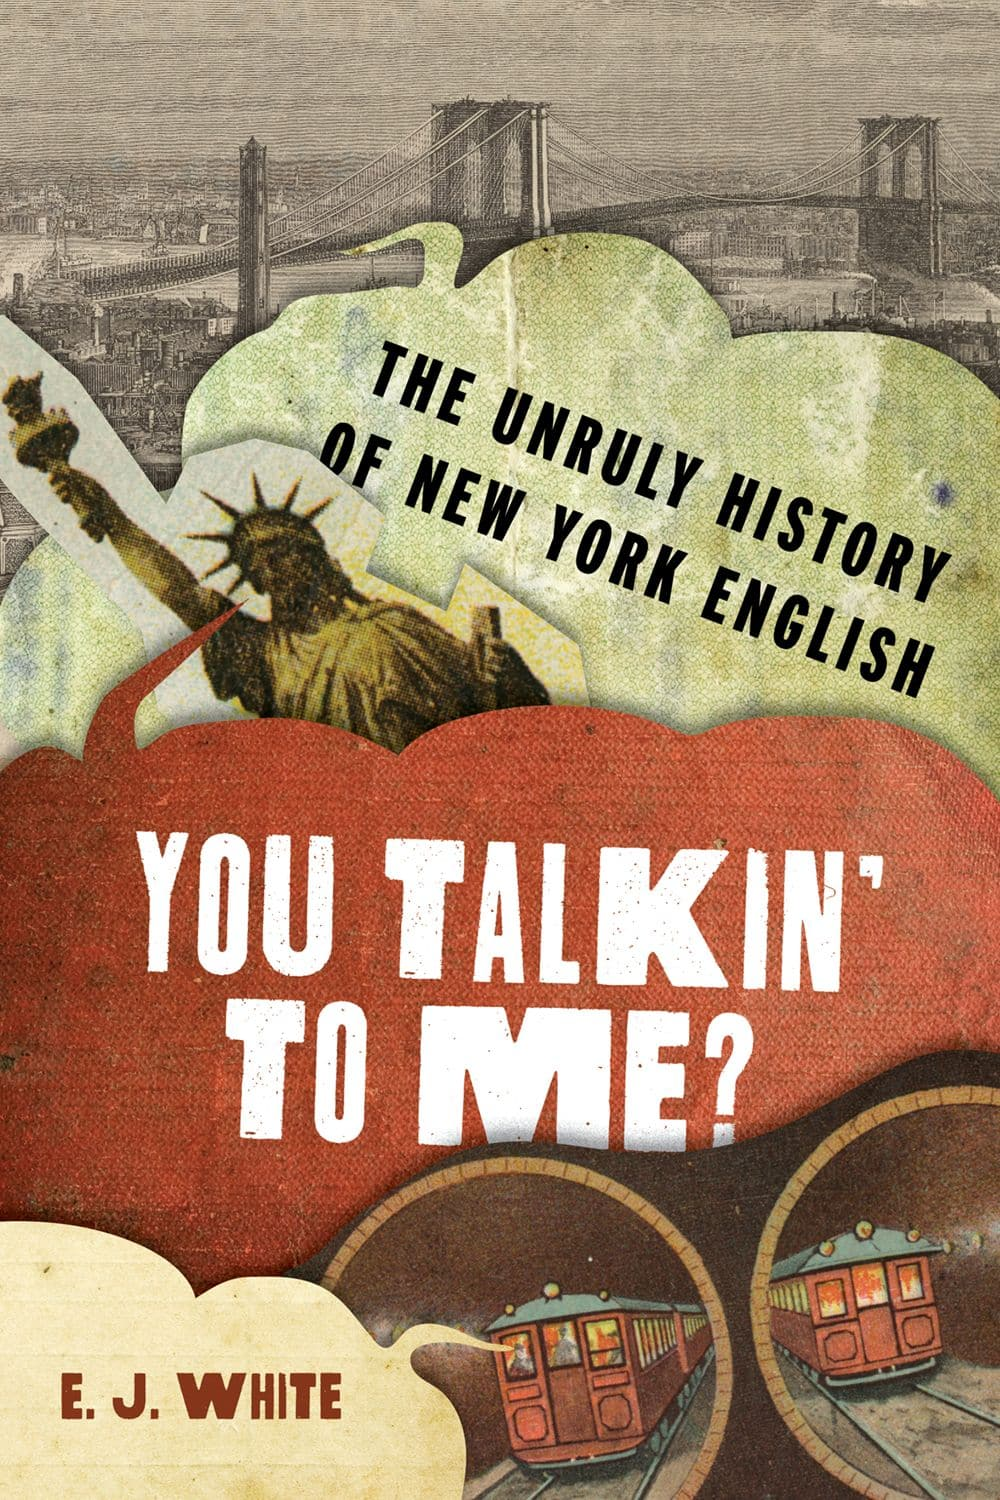 You talkin to me book cover